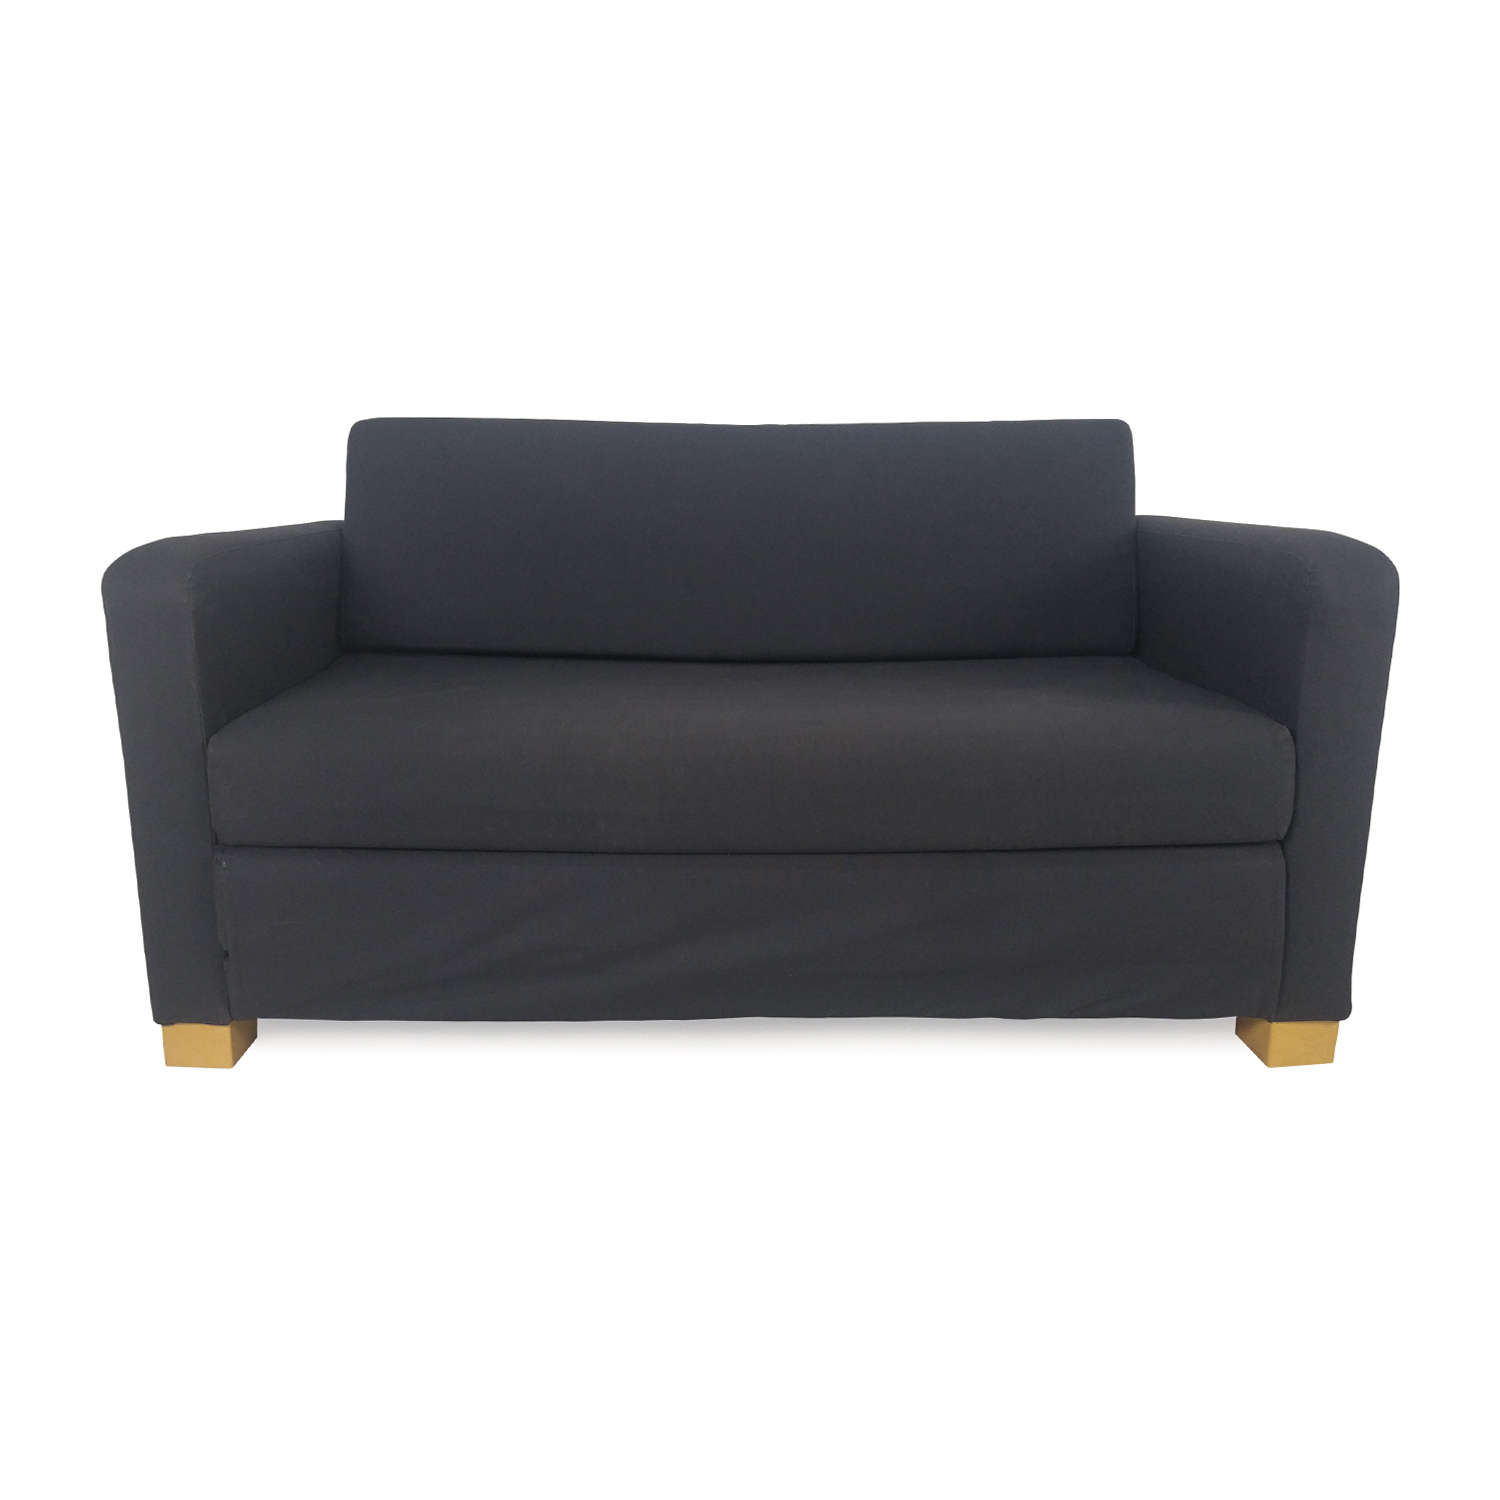 IKEA Off Blue Futon Sofa Bed For Sale